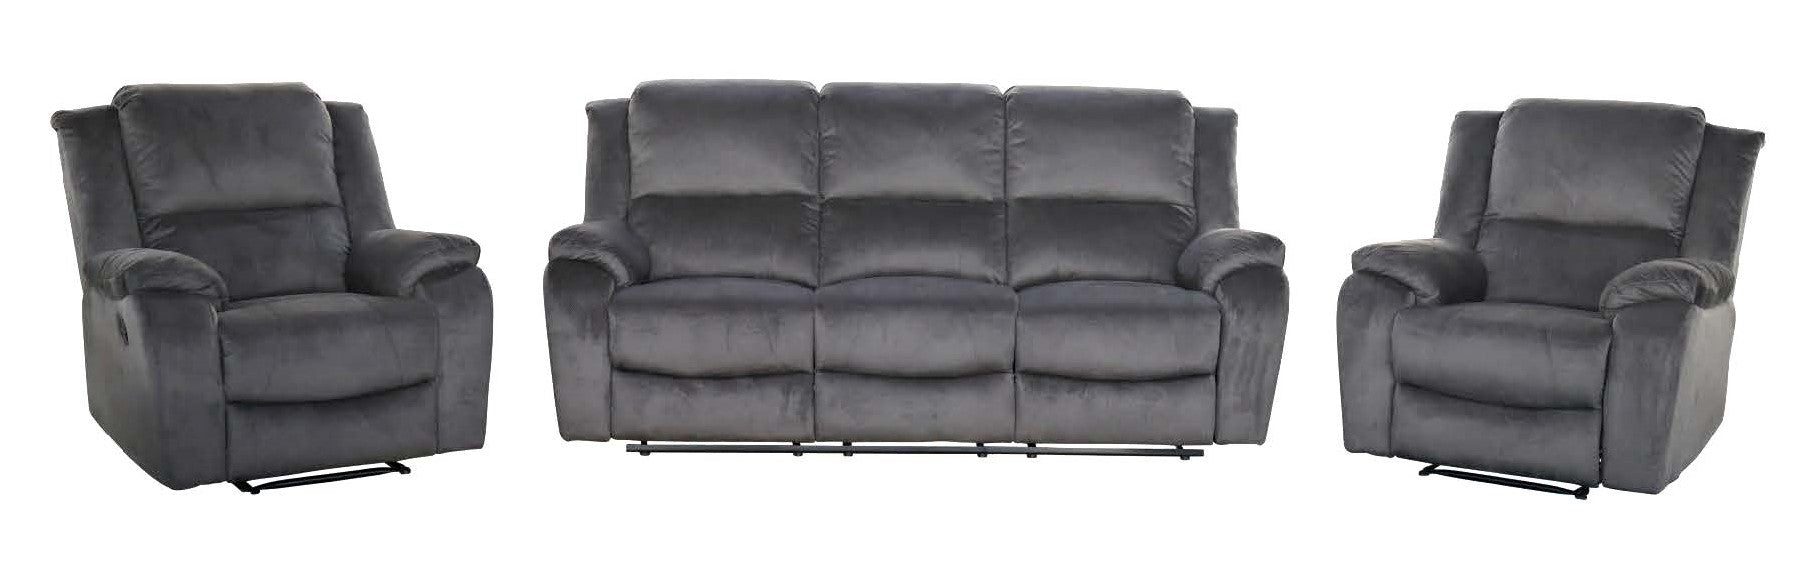 Austin 3 Seater Recliner Lounge Suite